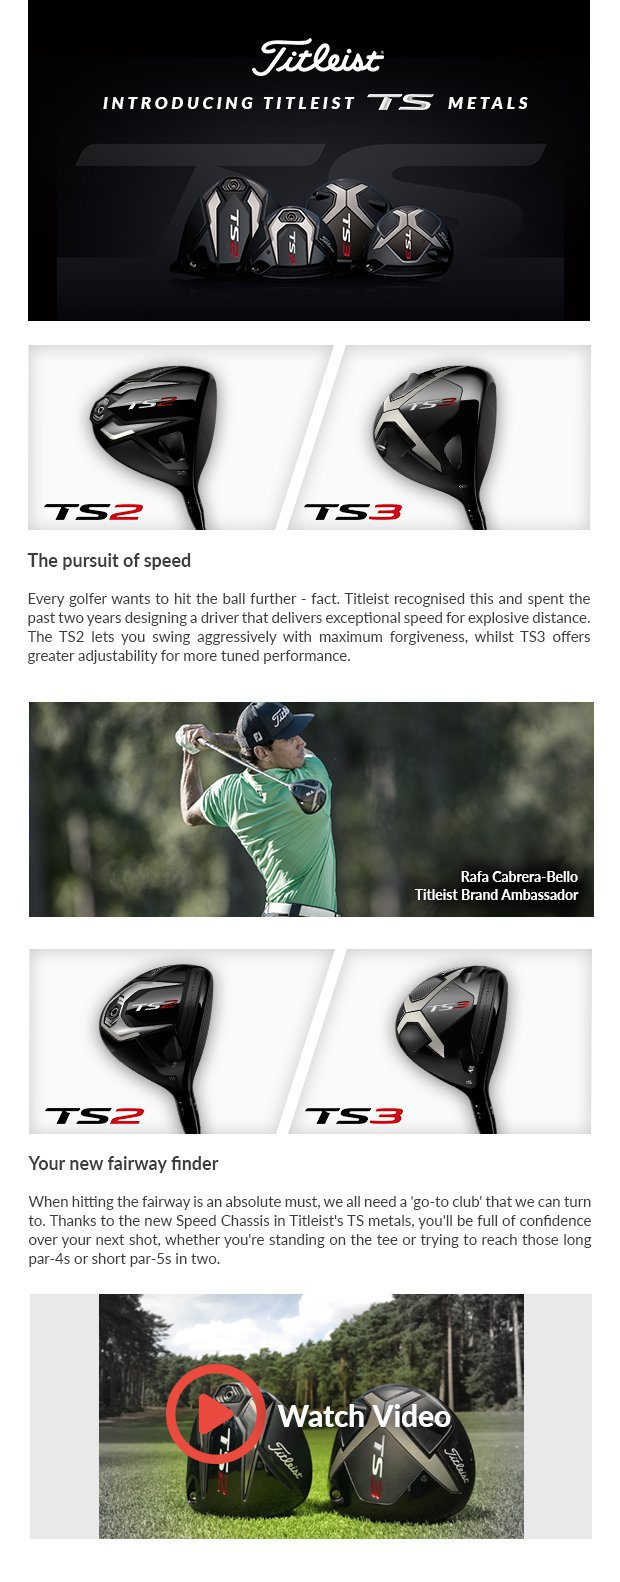 Introducing Titleist TS MetalsThe pursuit of speed Every golfer wants to hit the ball further - fact. Titleist recognised this and spent the past two years designing a driver that delivers exceptional speed for explosive distance. The TS2 lets you swing aggressively with maximum forgiveness, whilst TS3 offersgreater adjustability for more tuned performance.